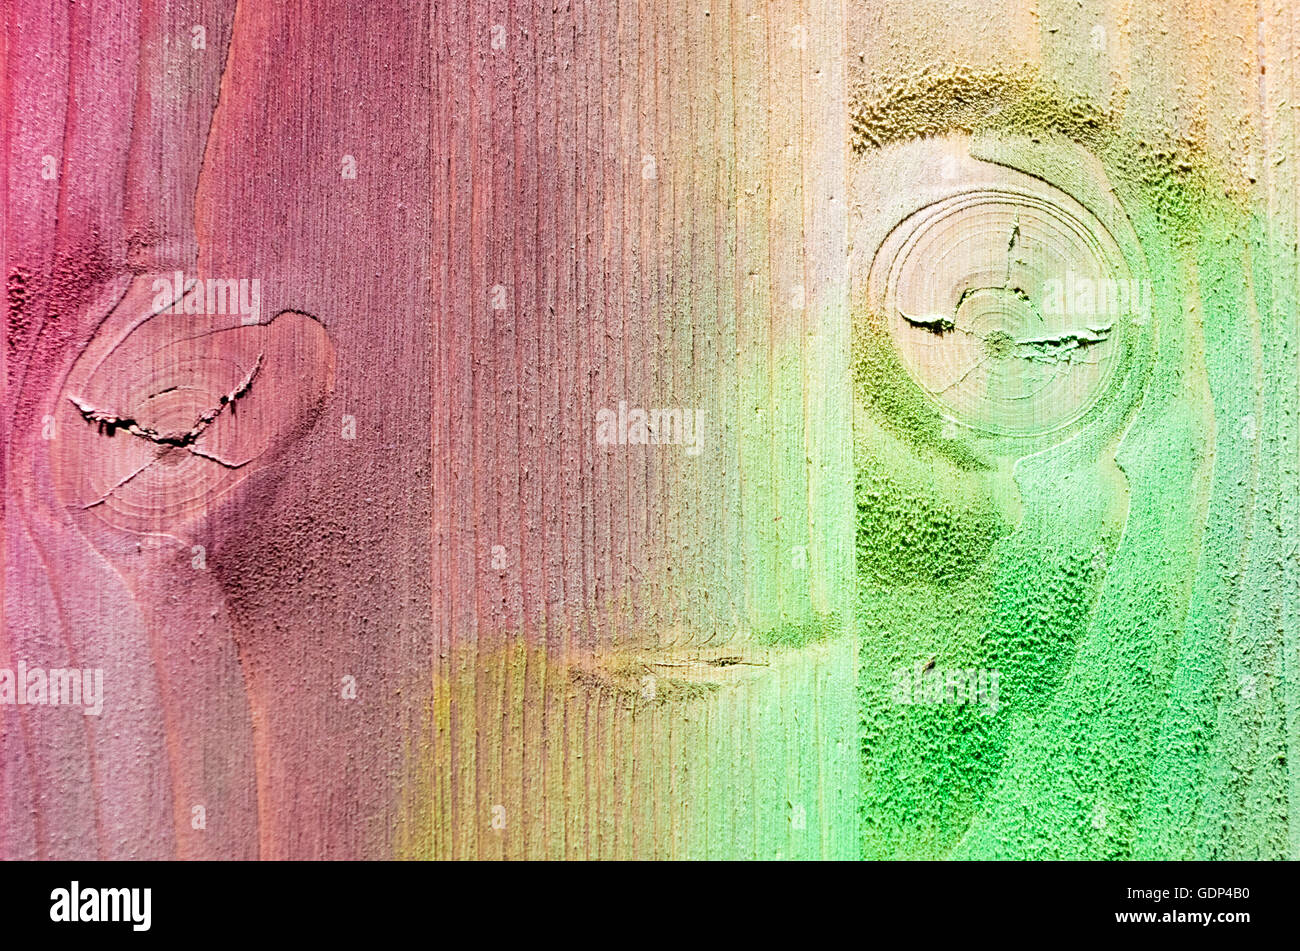 Texture of painted multi colored Wood Planks Background - Stock Image